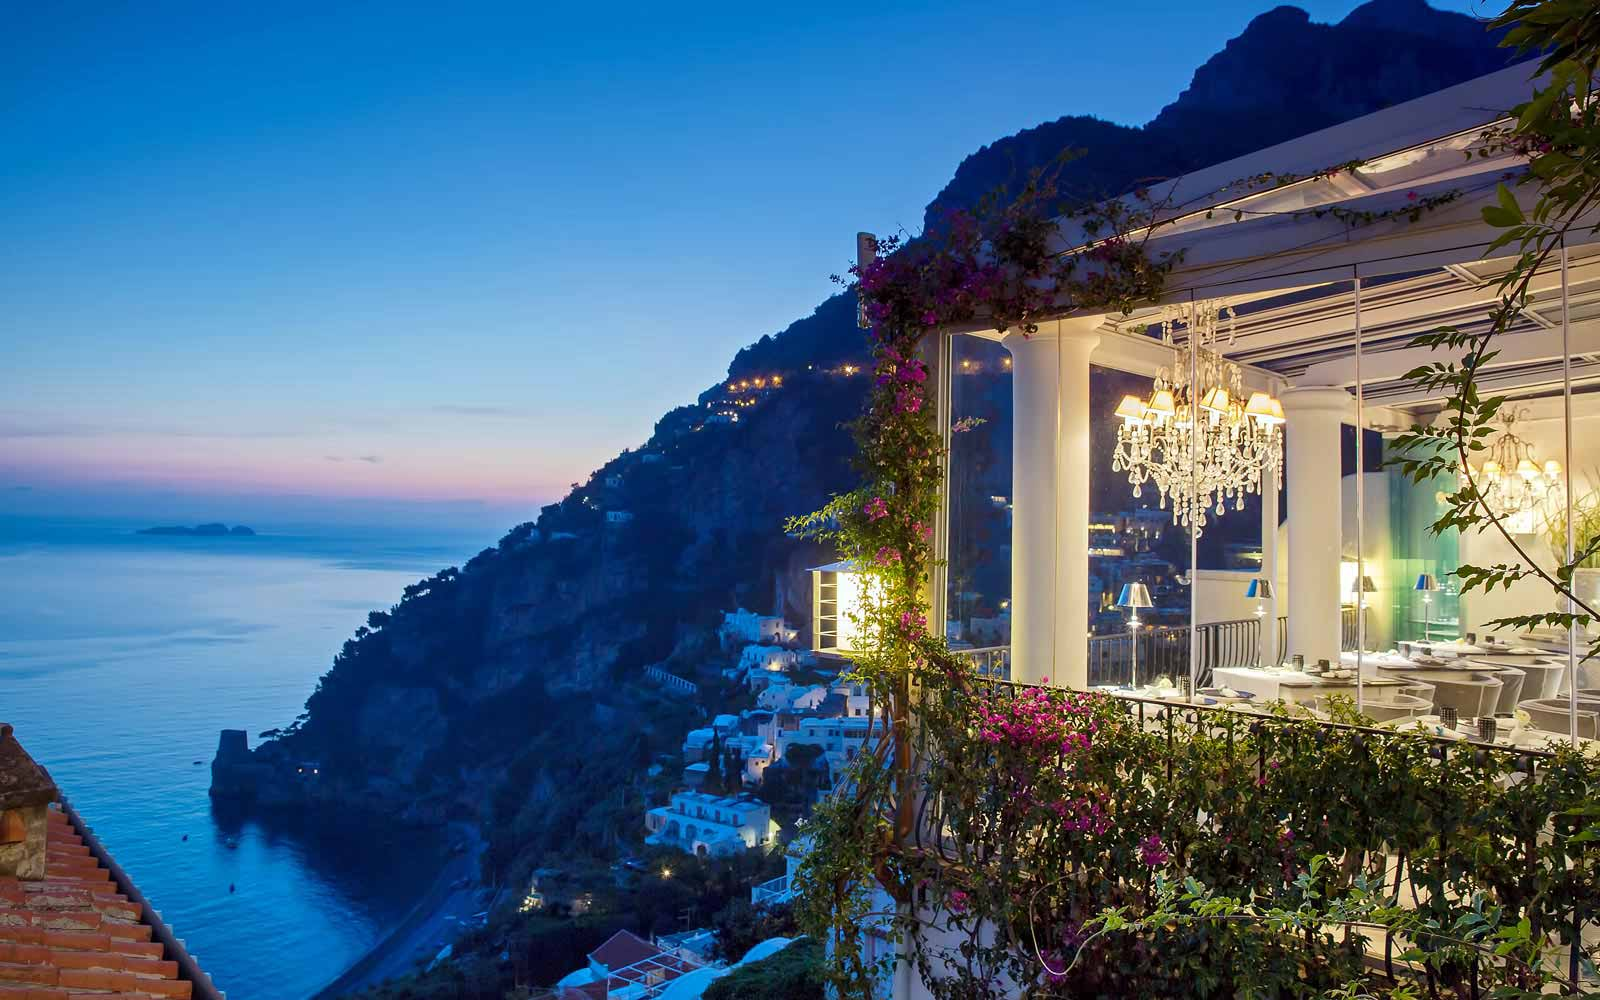 The view of the  Amalfi Coast from Hotel villa Franca